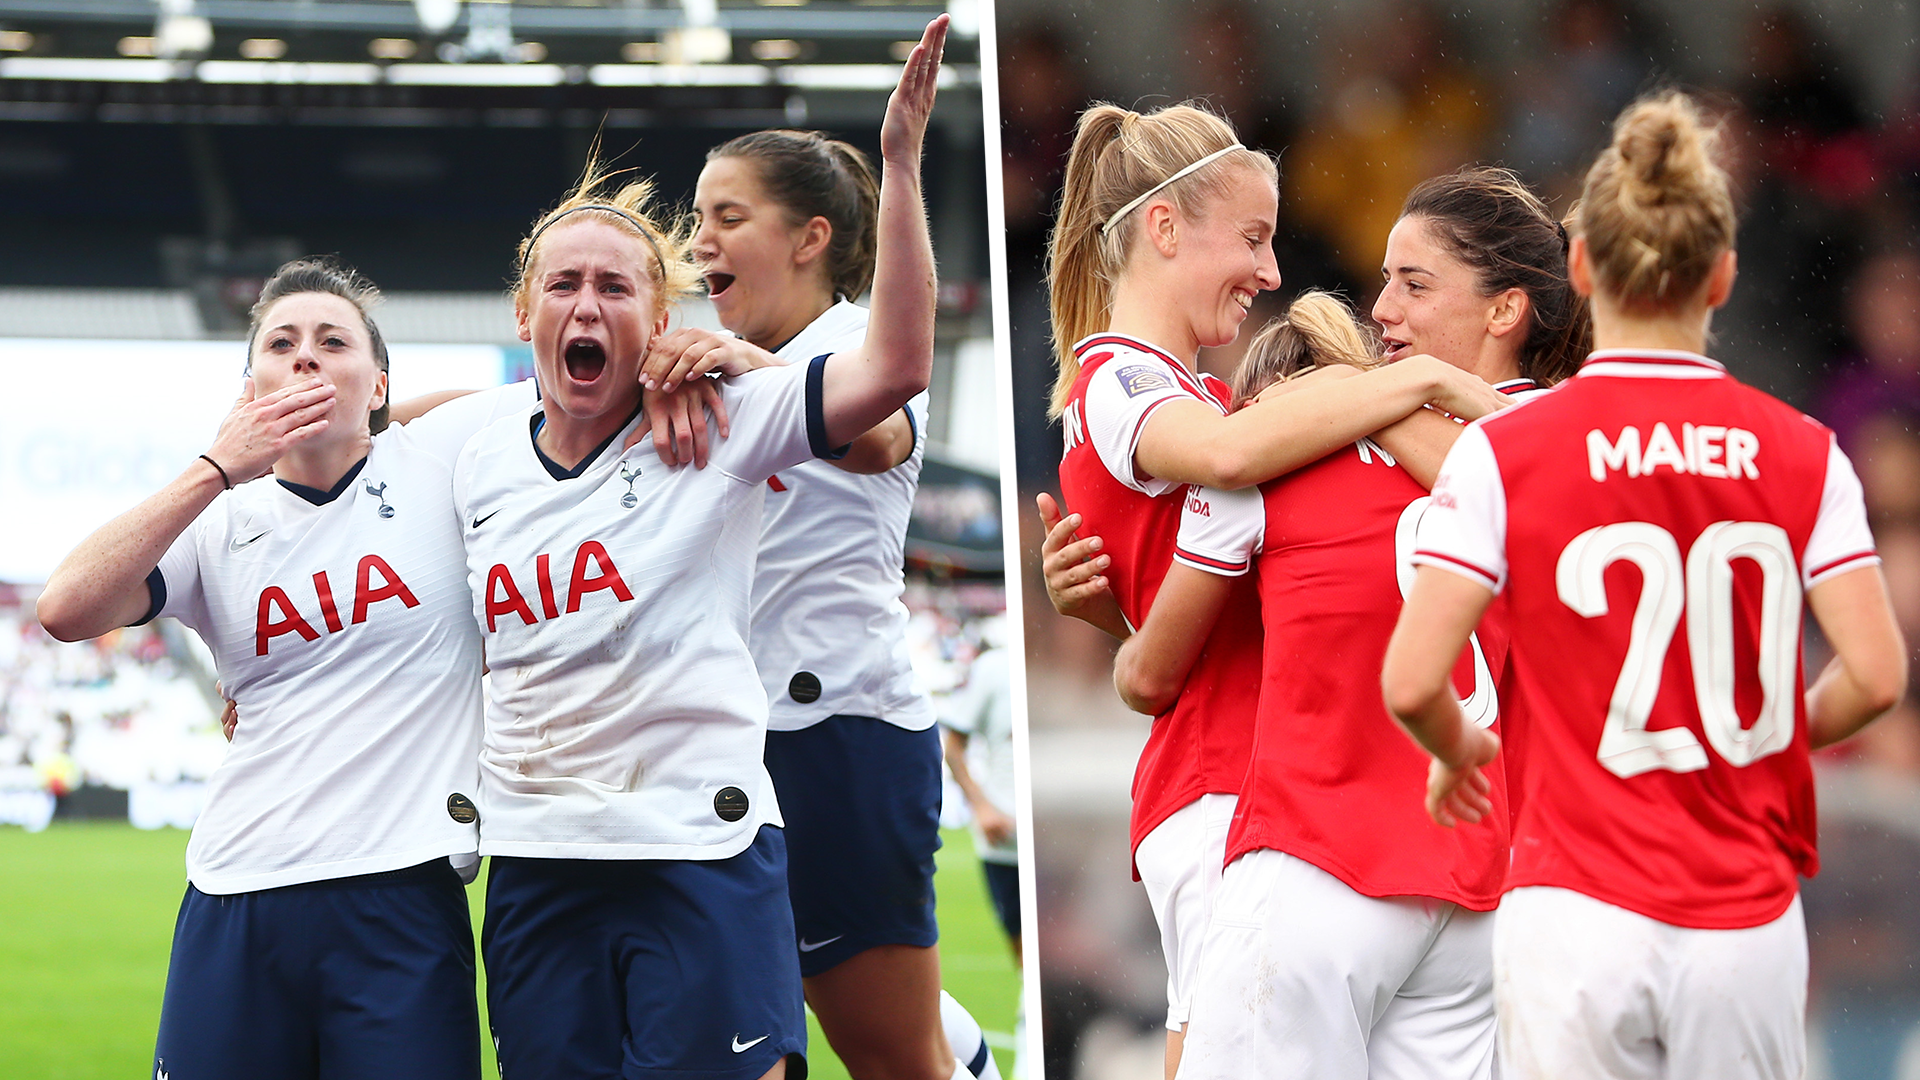 Record women's soccer crowds in England